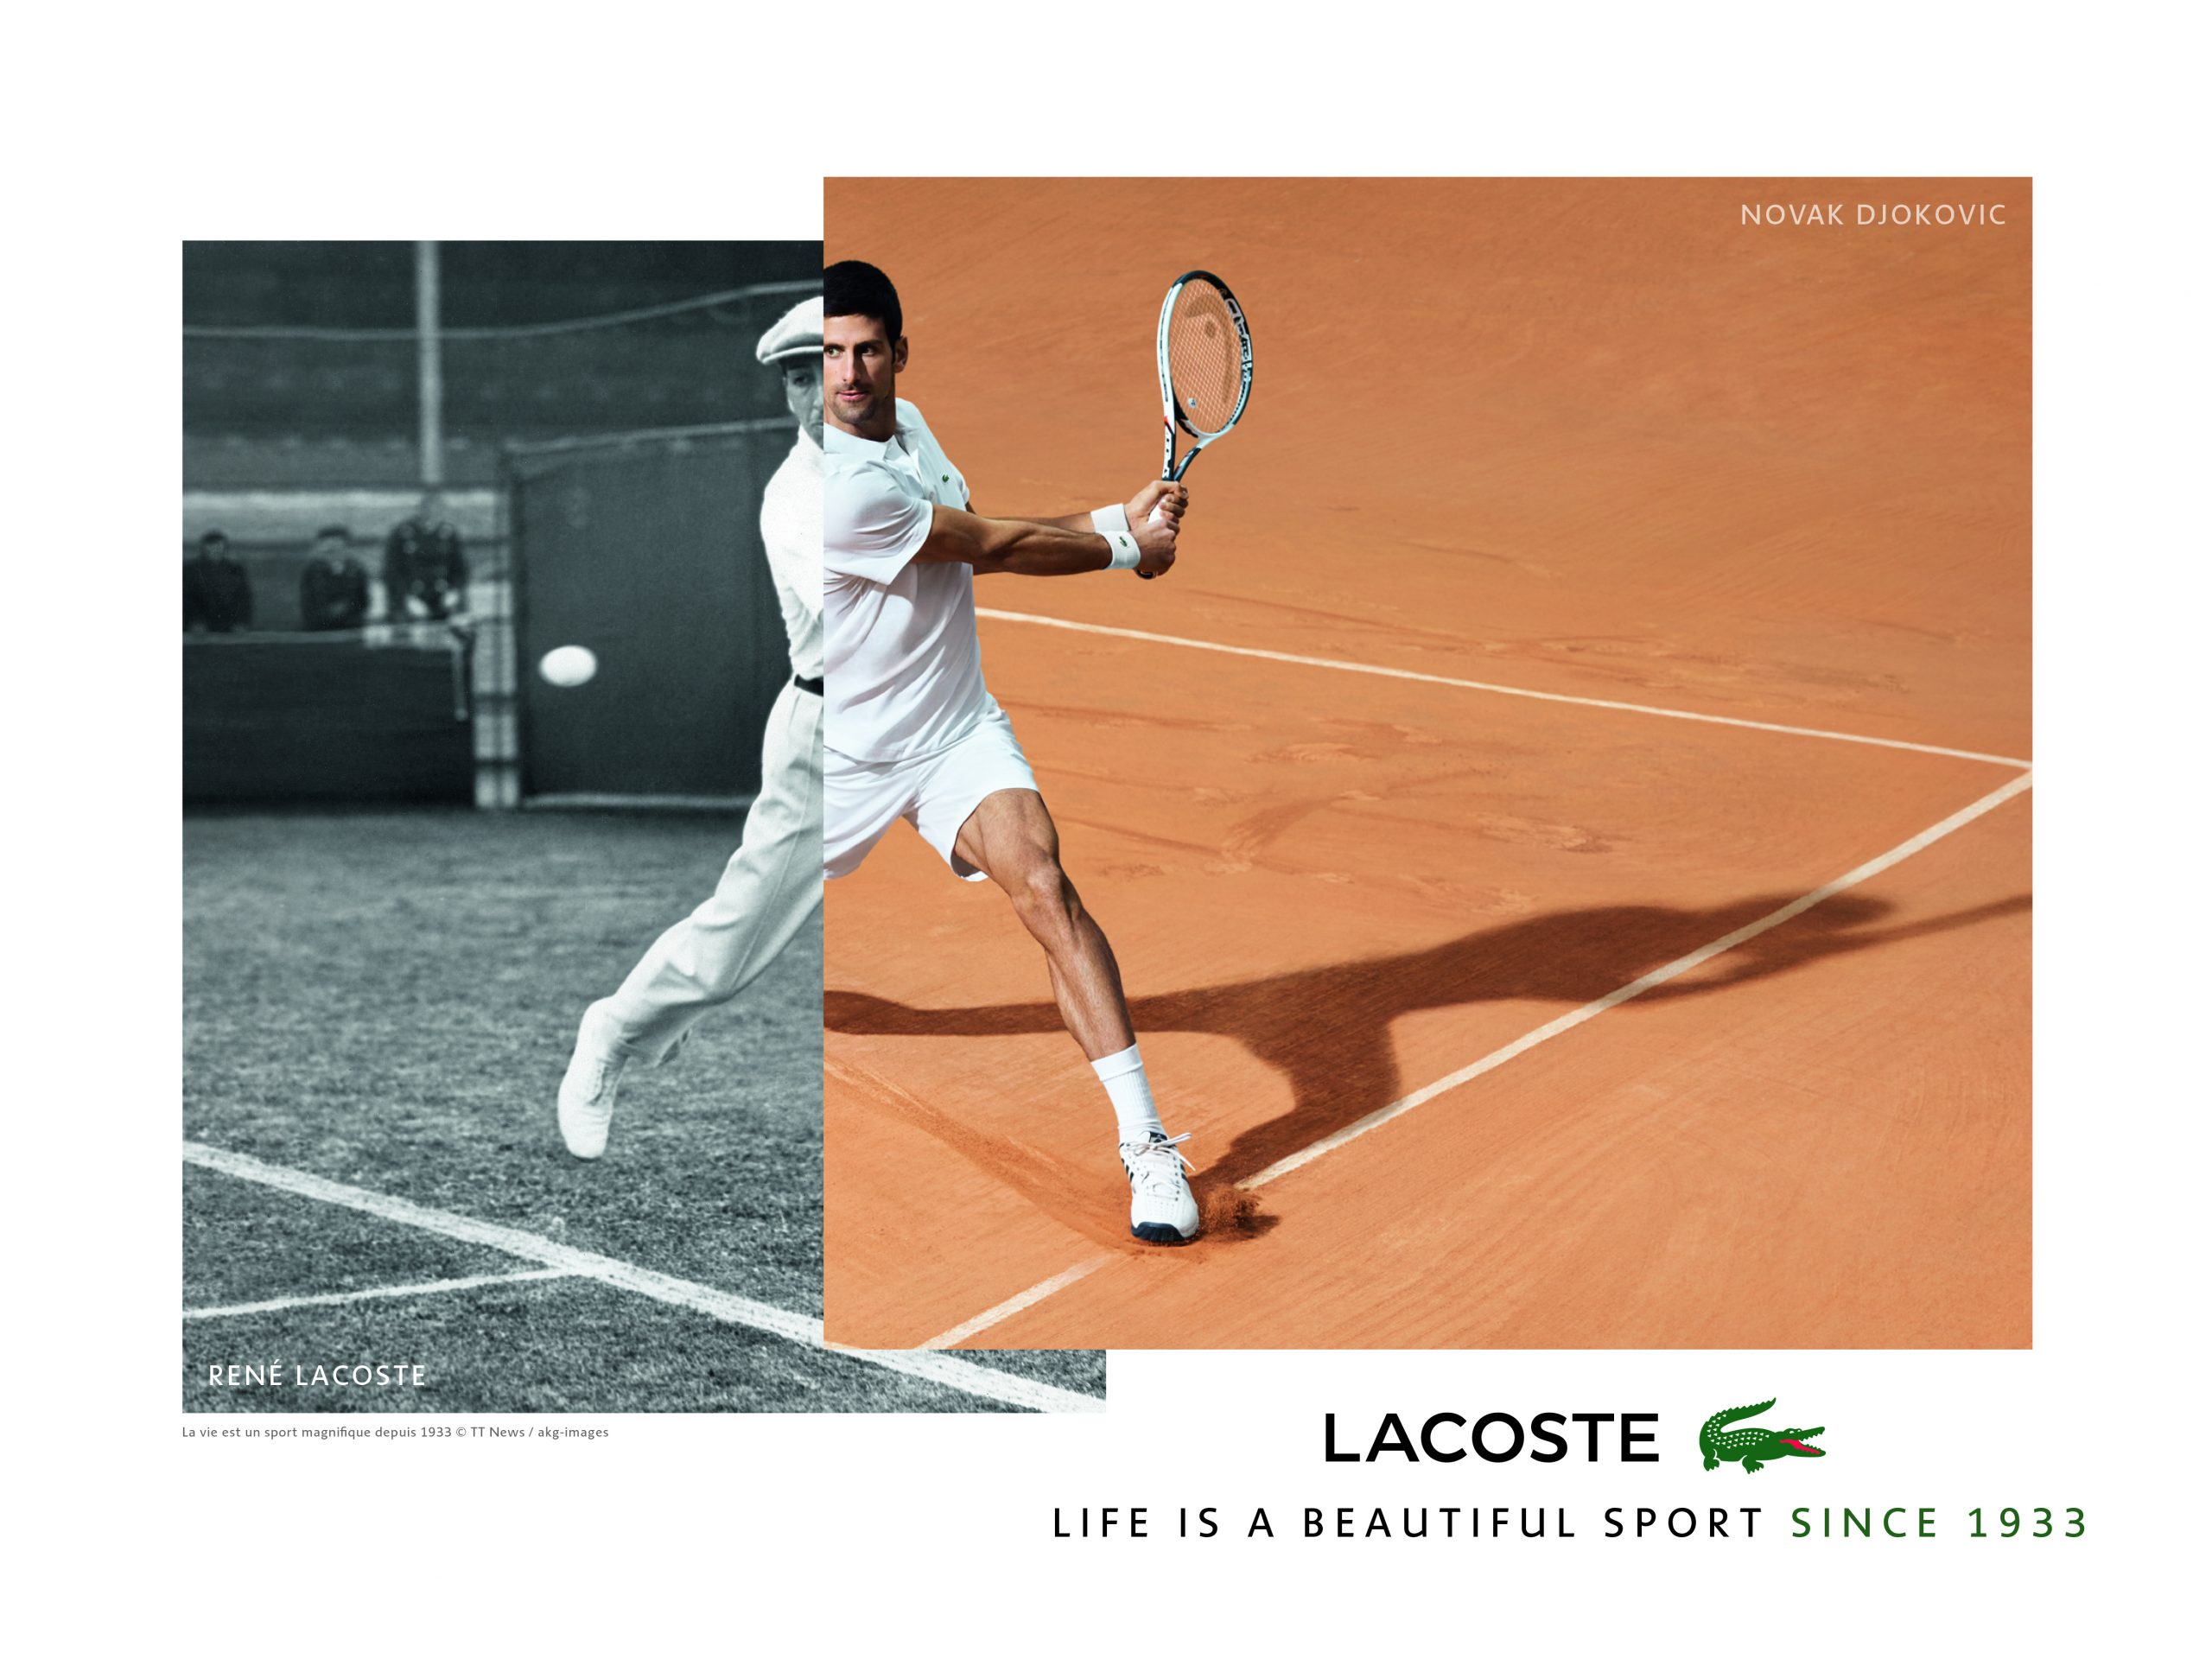 LACOSTE_NOVAK_DJOKOVIC_CAMPAIGN_ALL_RIGHTS_RESERVED.jpg